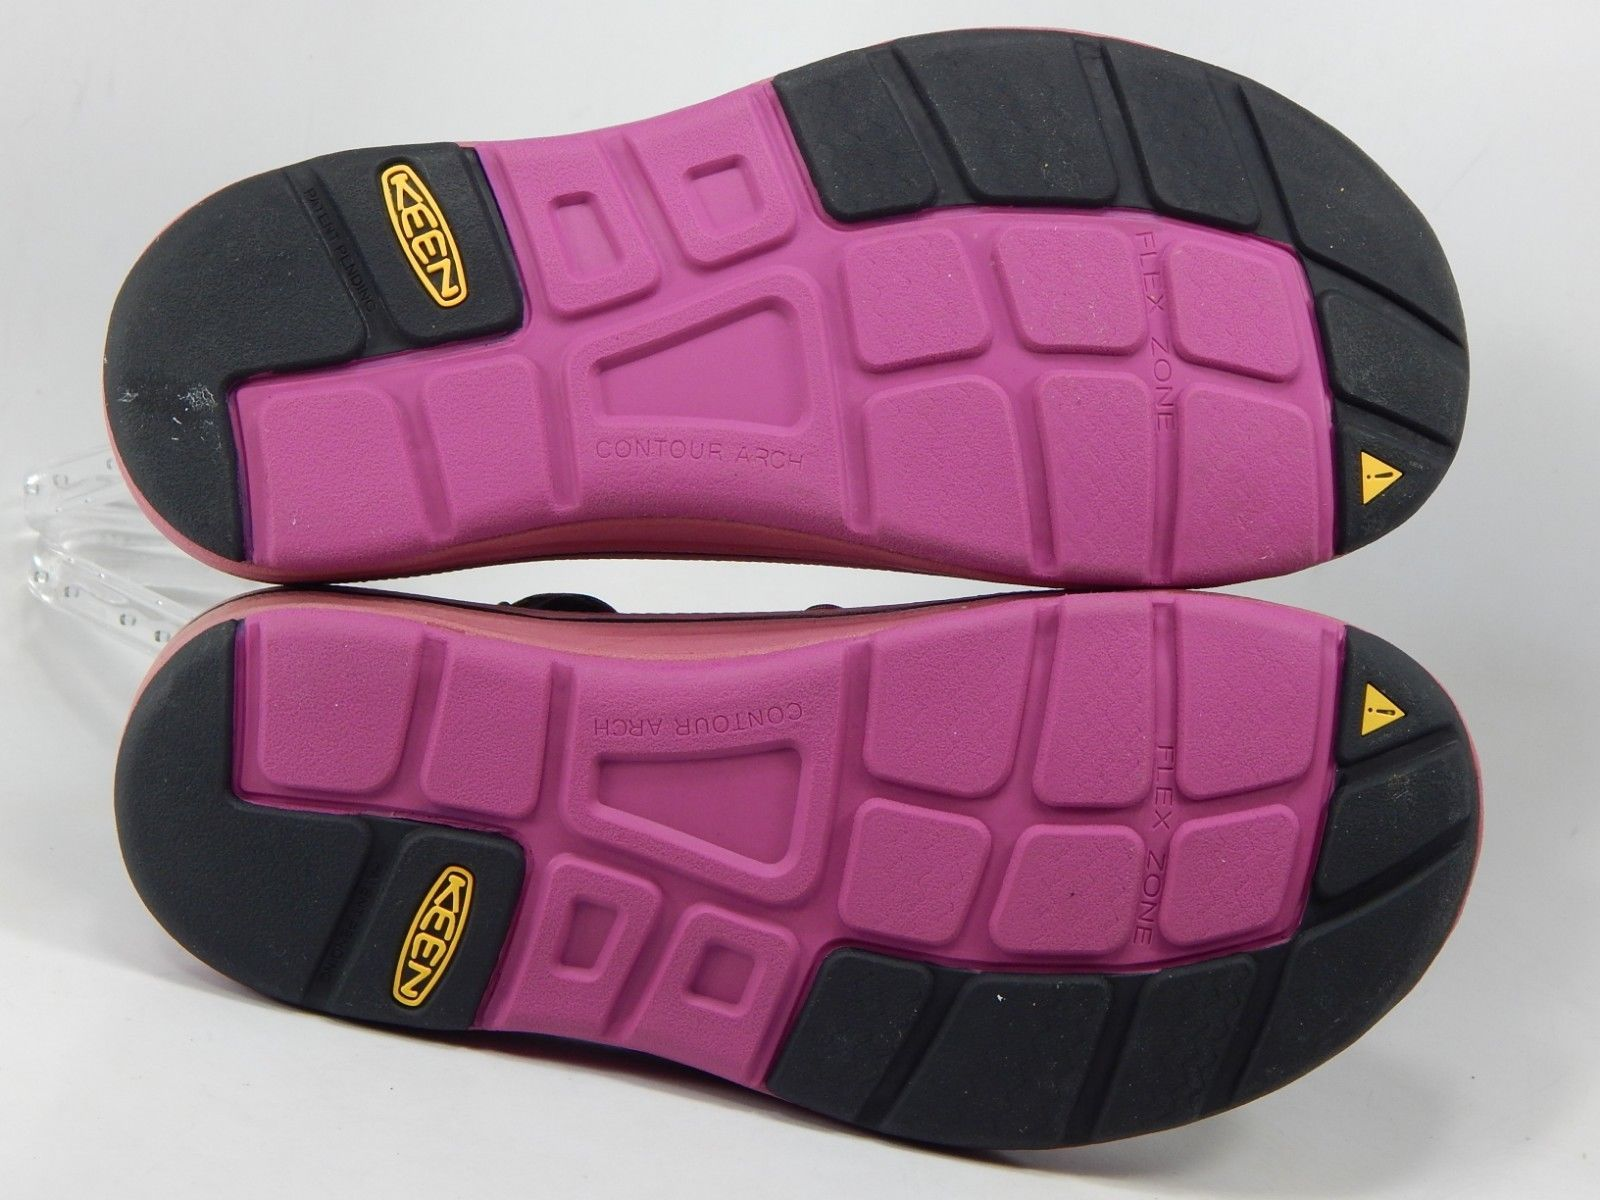 Keen Uneek Size 7.5 M (B) EU 38 Women's Sport Sandals Shoes Pink Dhalia 1013886